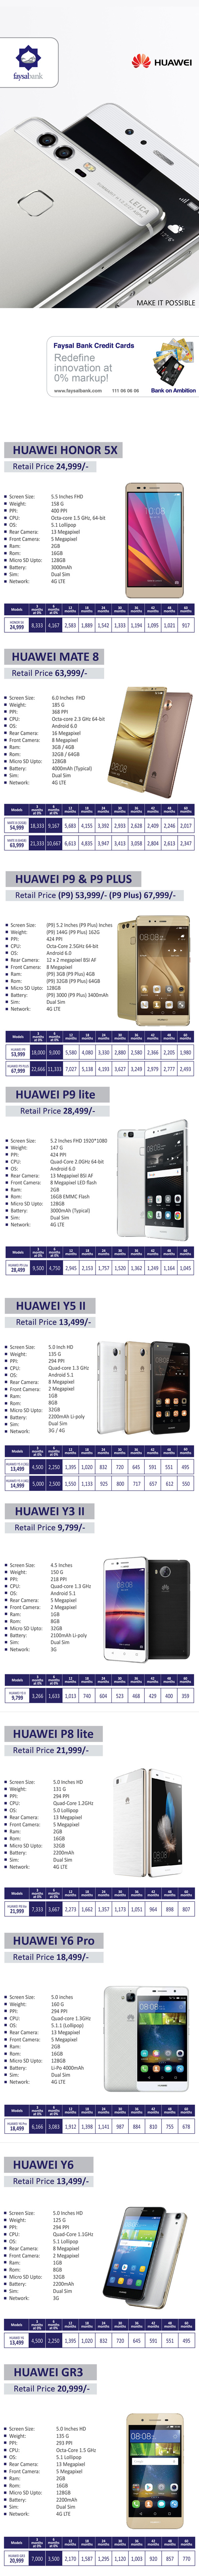 Huawei Smartphones 0% Installment Plan - Faysal Bank